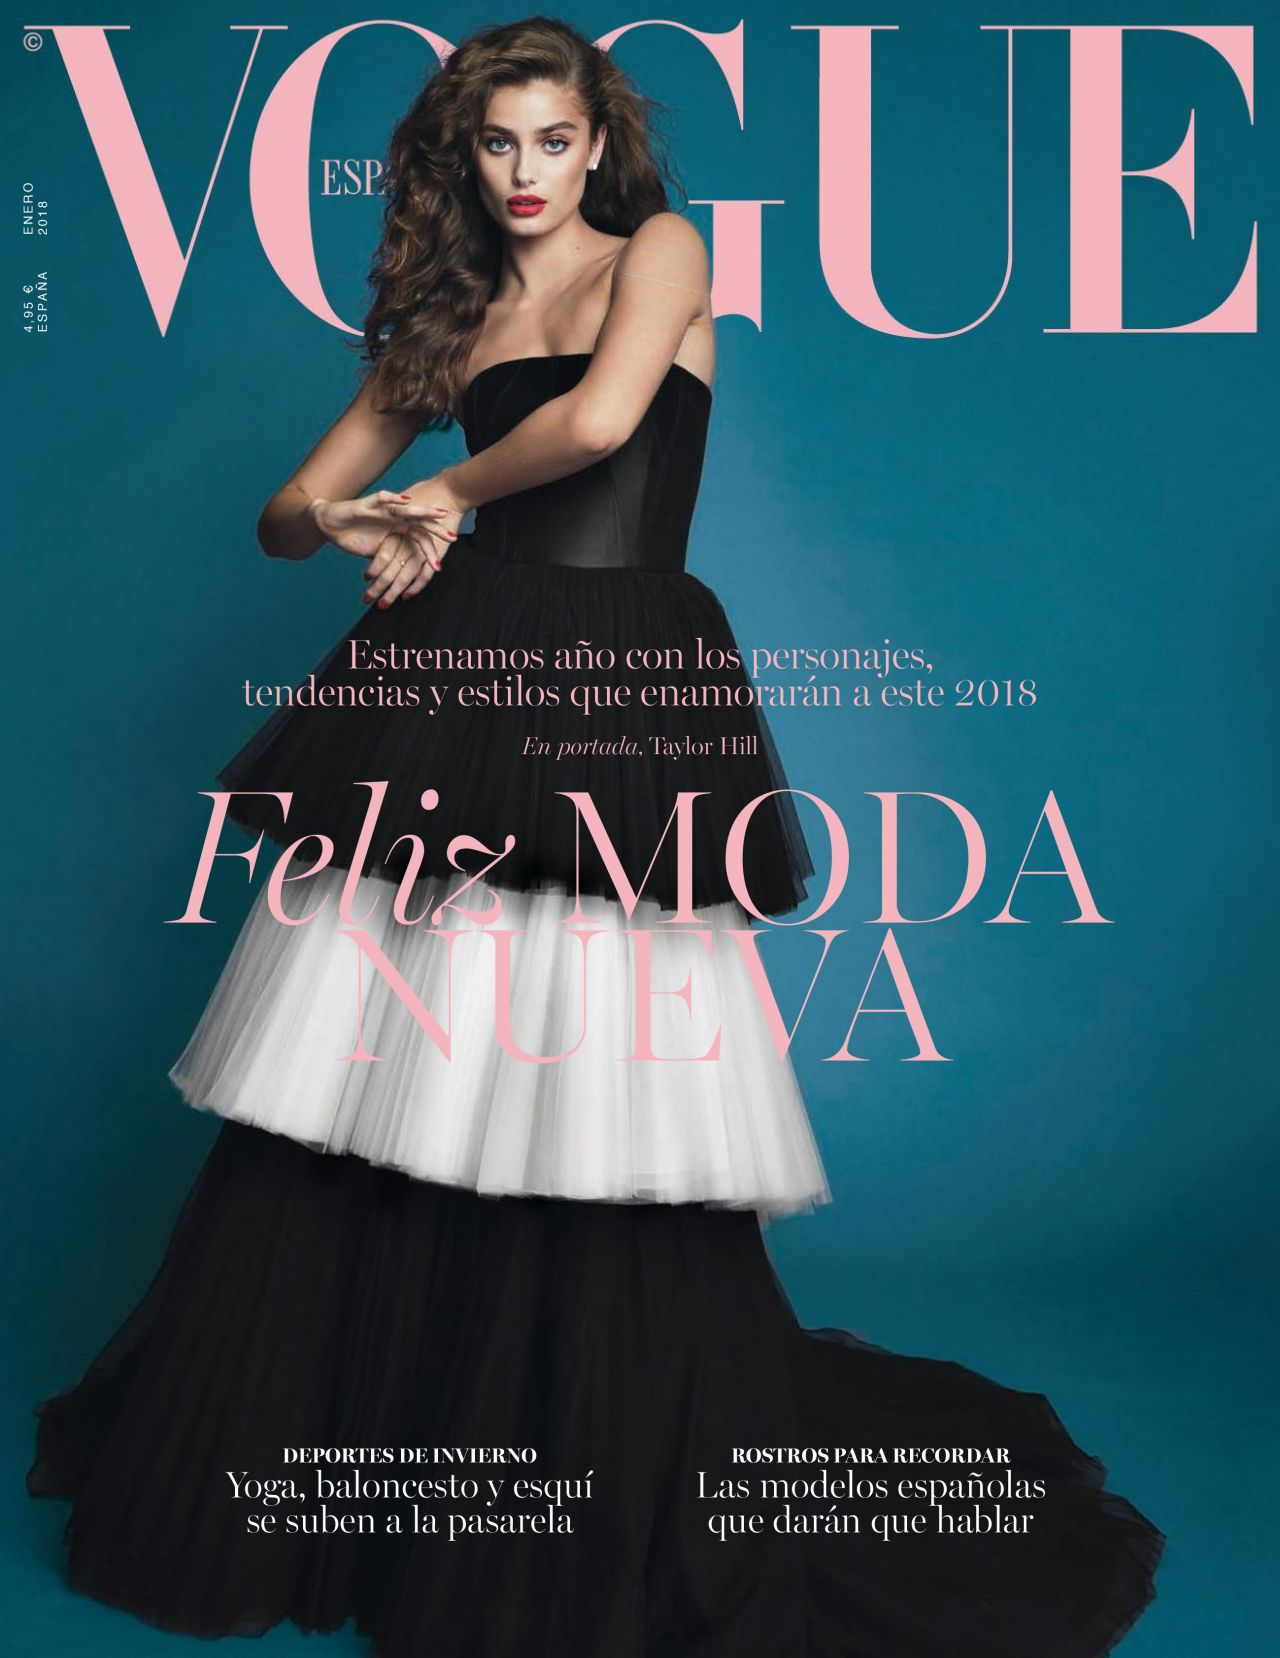 Vogue The Top Selling Fashion Magazine: Vogue Spain January 2018 Issue